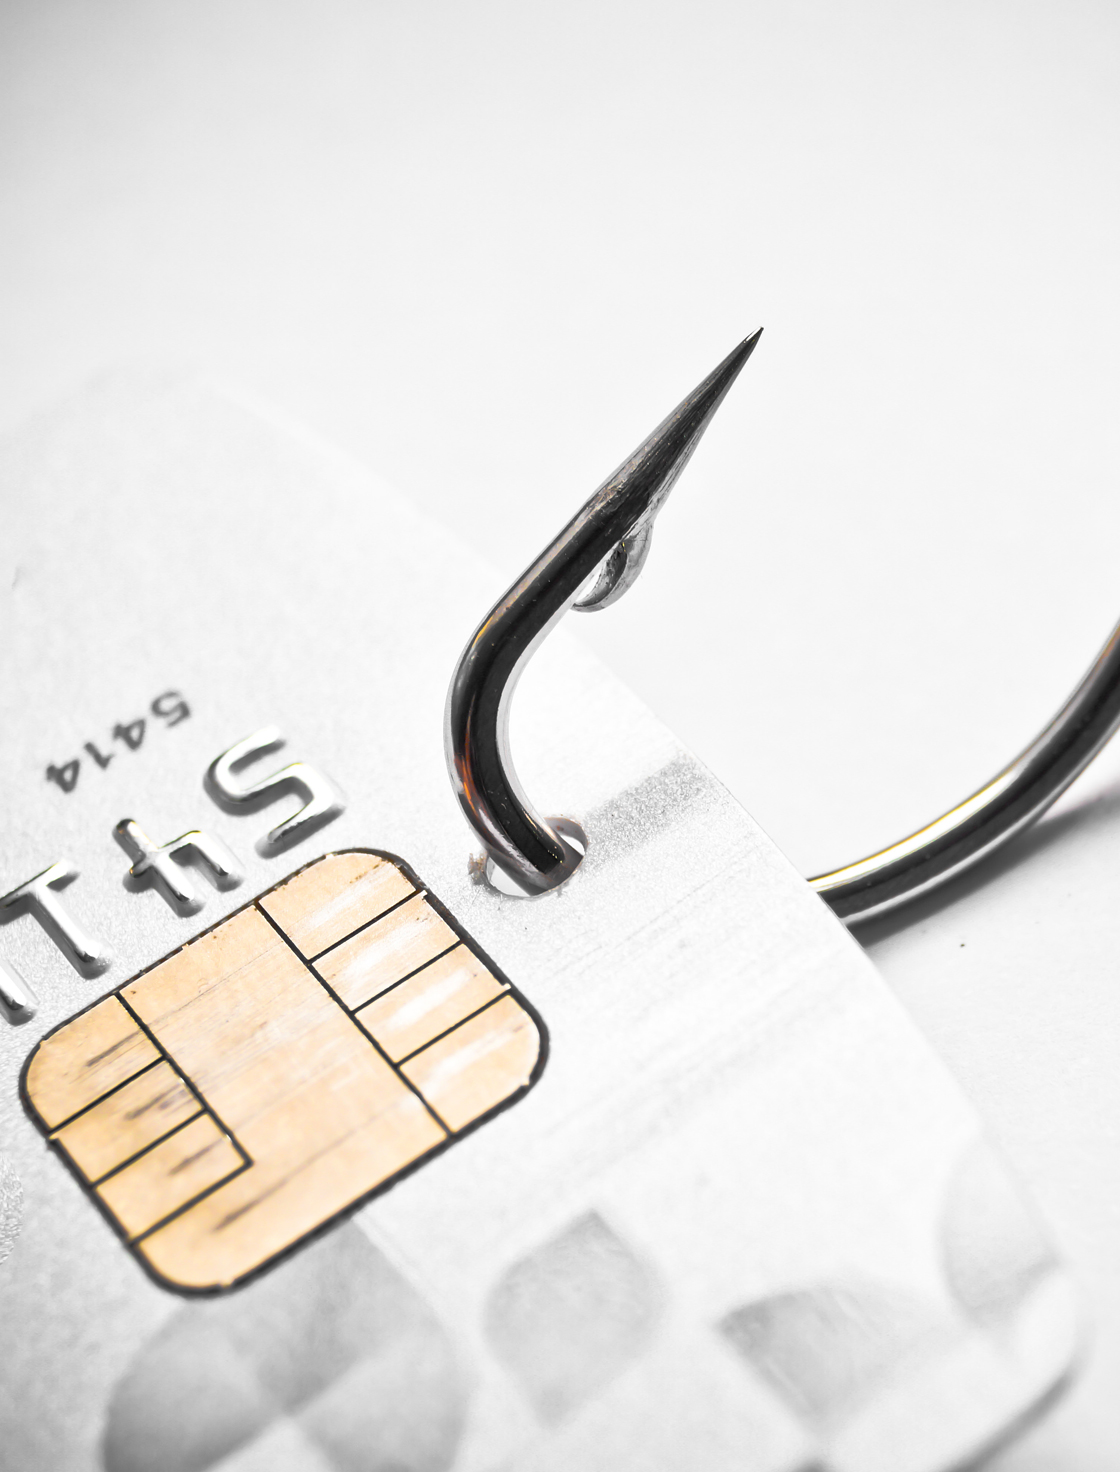 A credit card on a fishing hook